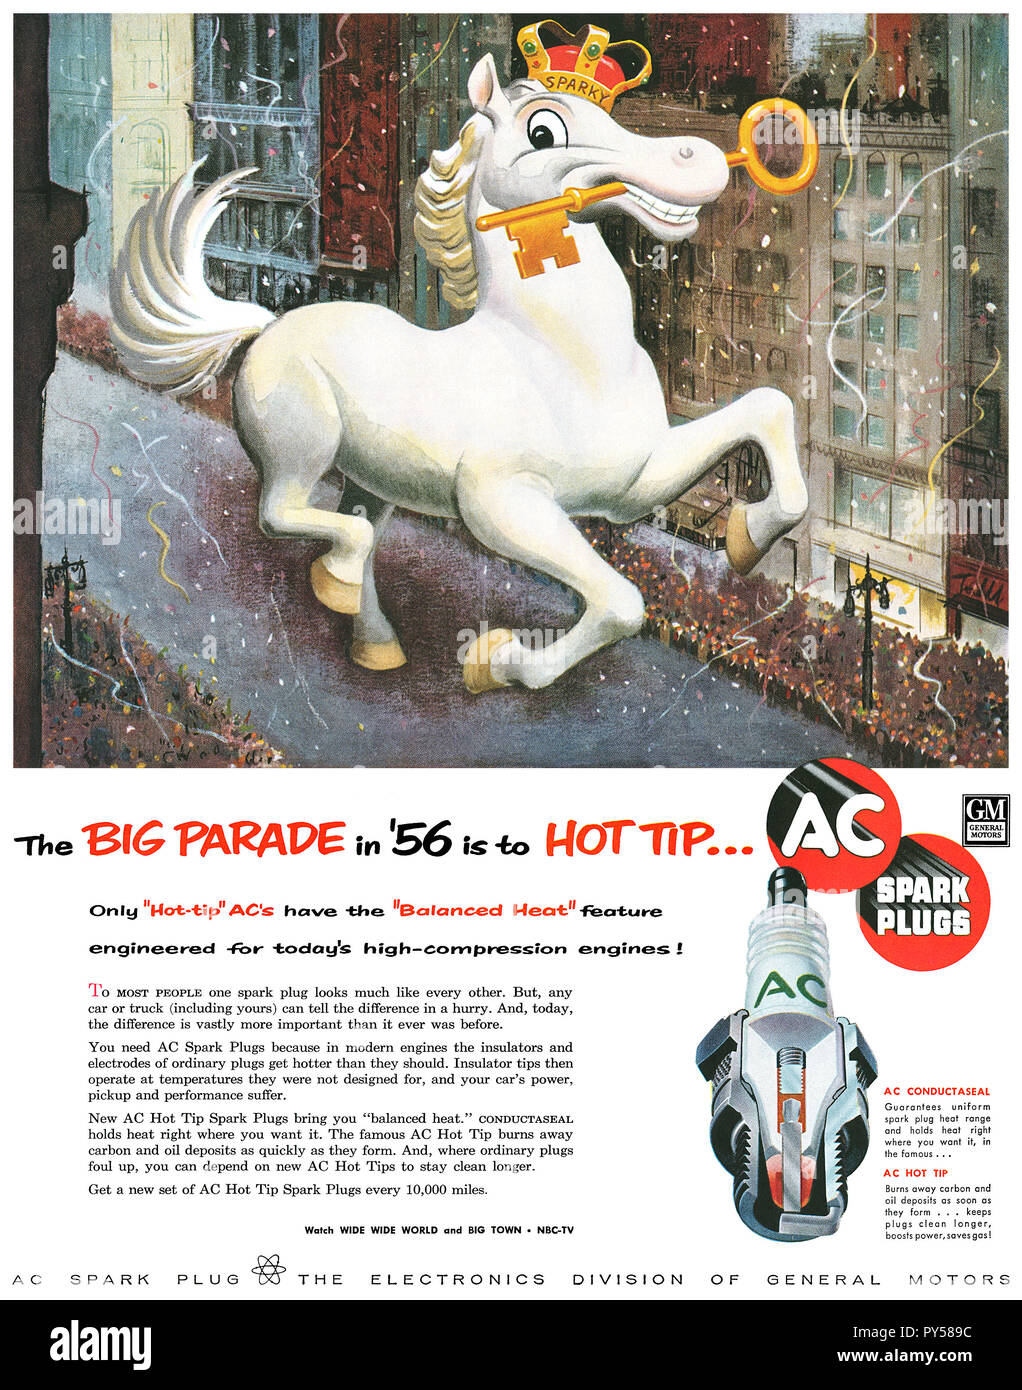 1956 U.S. advertisement for AC spark plugs. - Stock Image